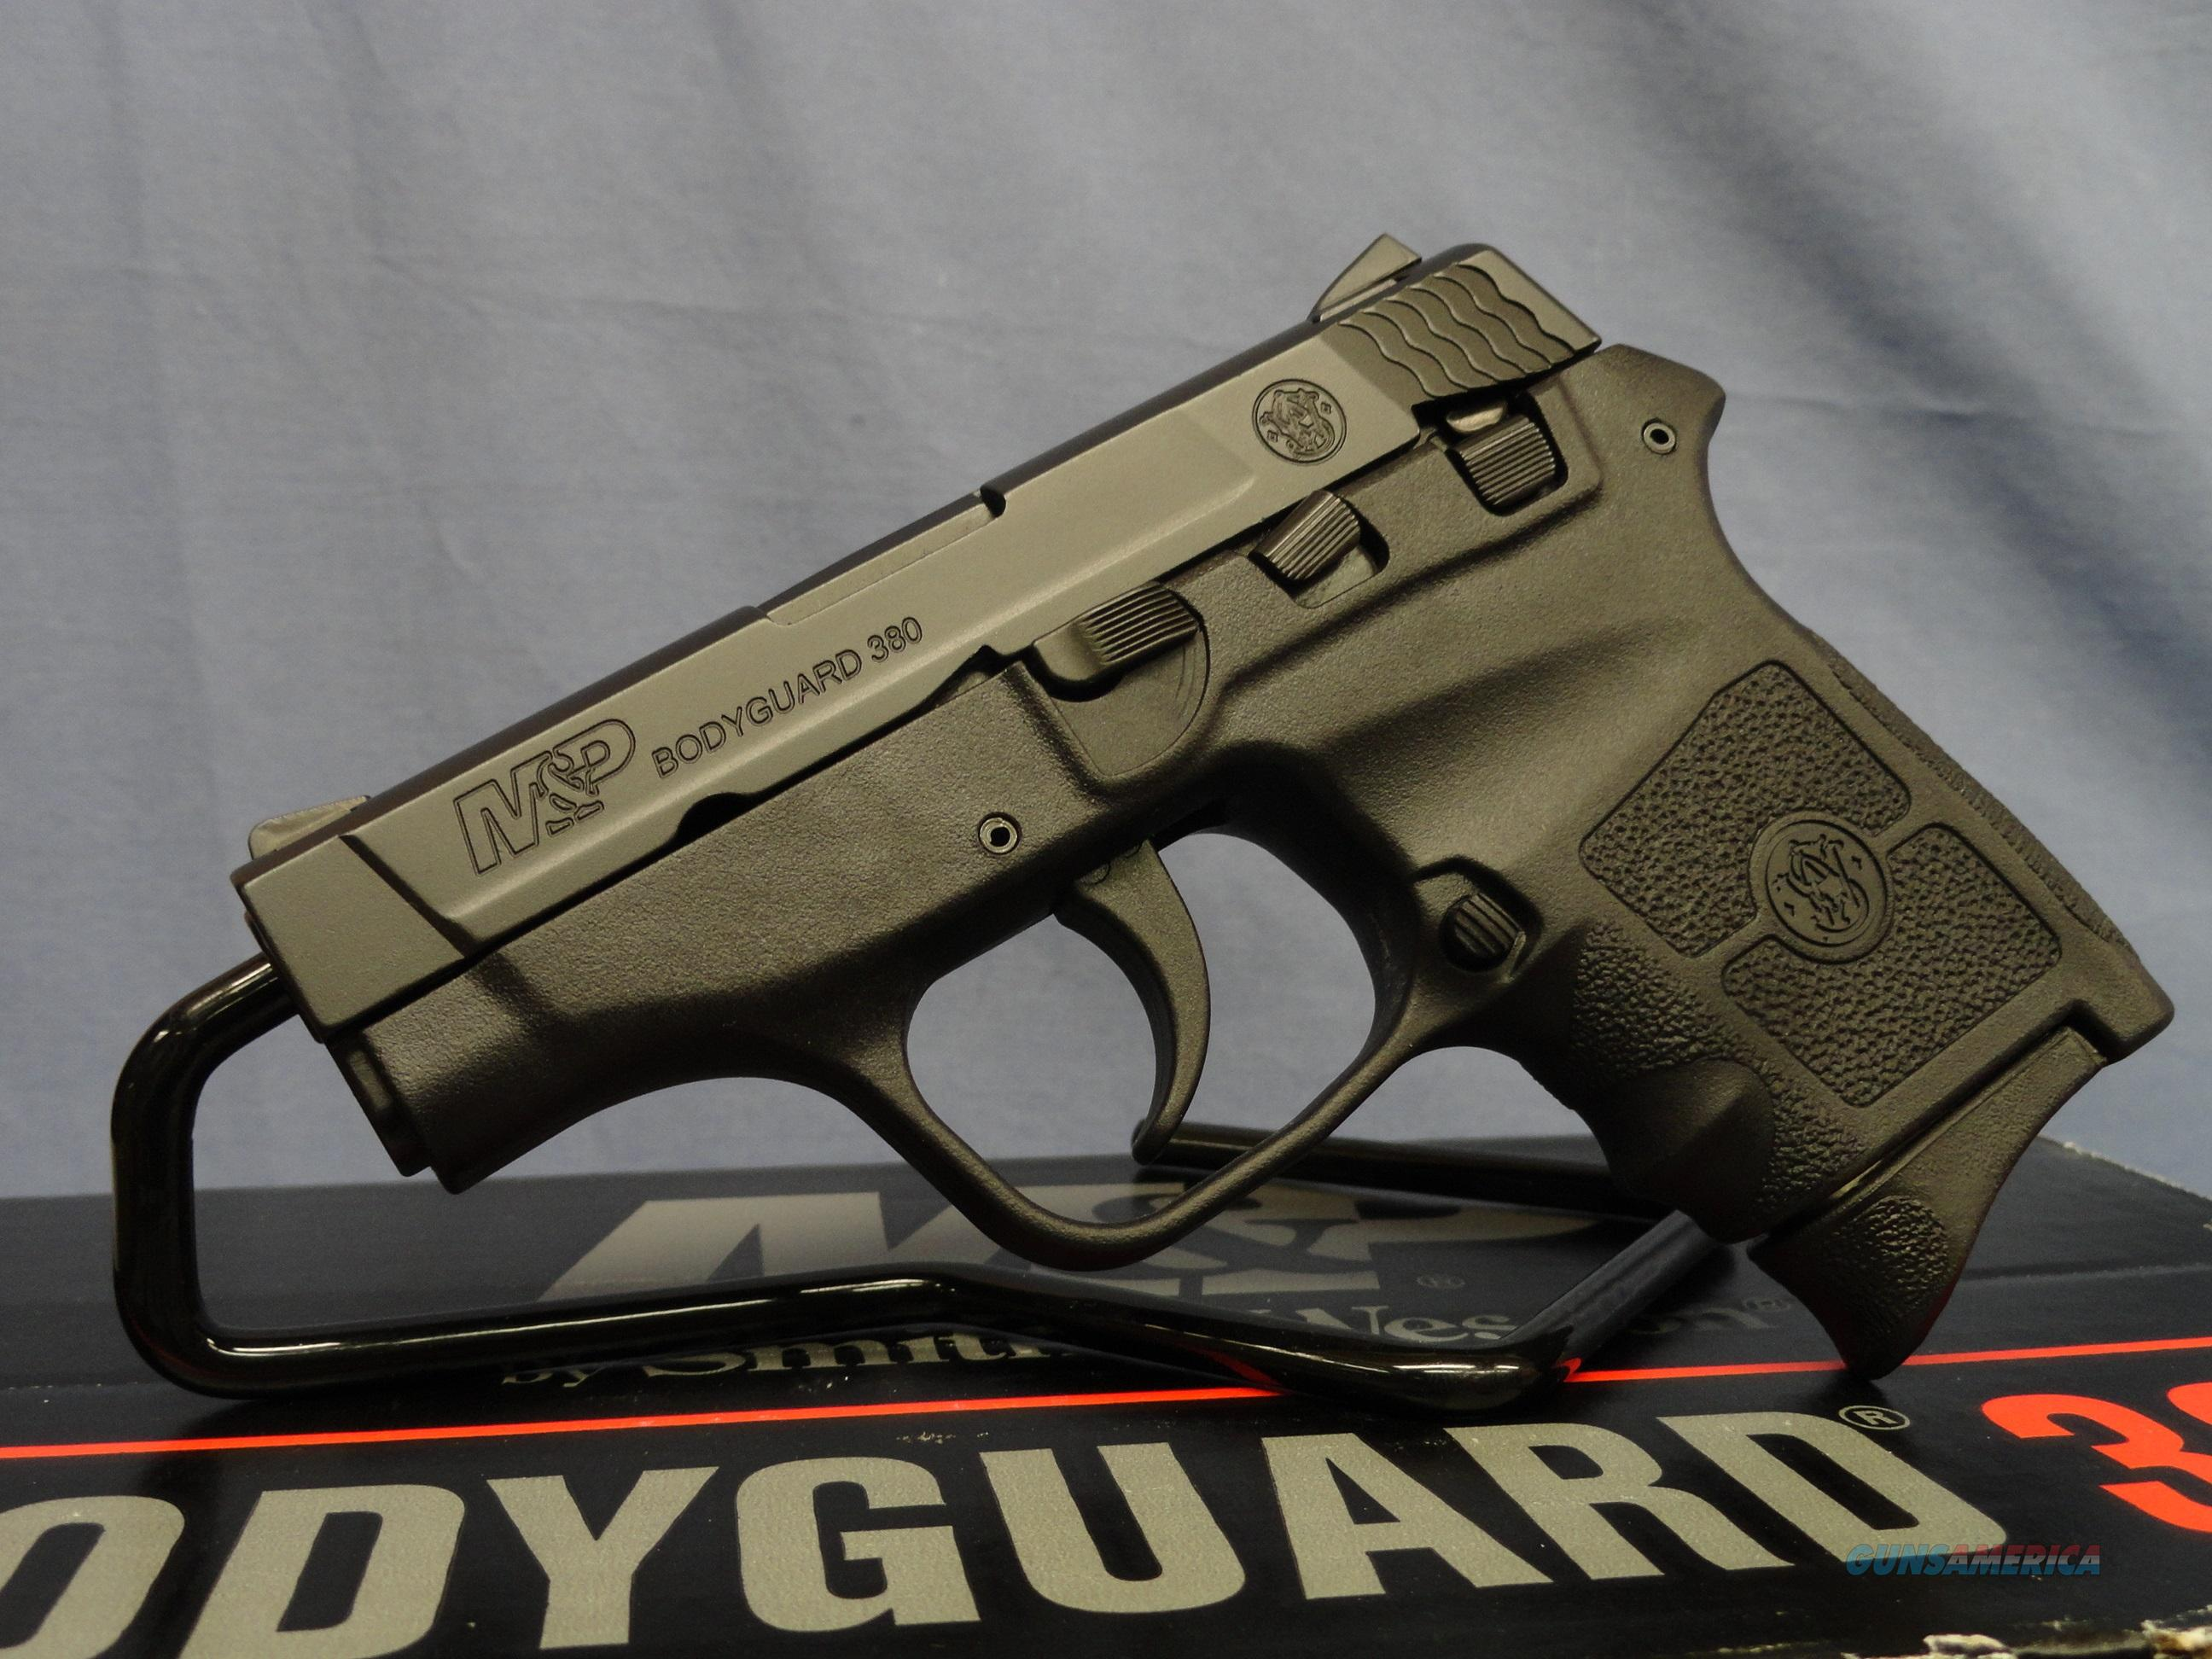 Smith & Wesson Bodyguard .380  Guns > Pistols > Smith & Wesson Pistols - Autos > Polymer Frame